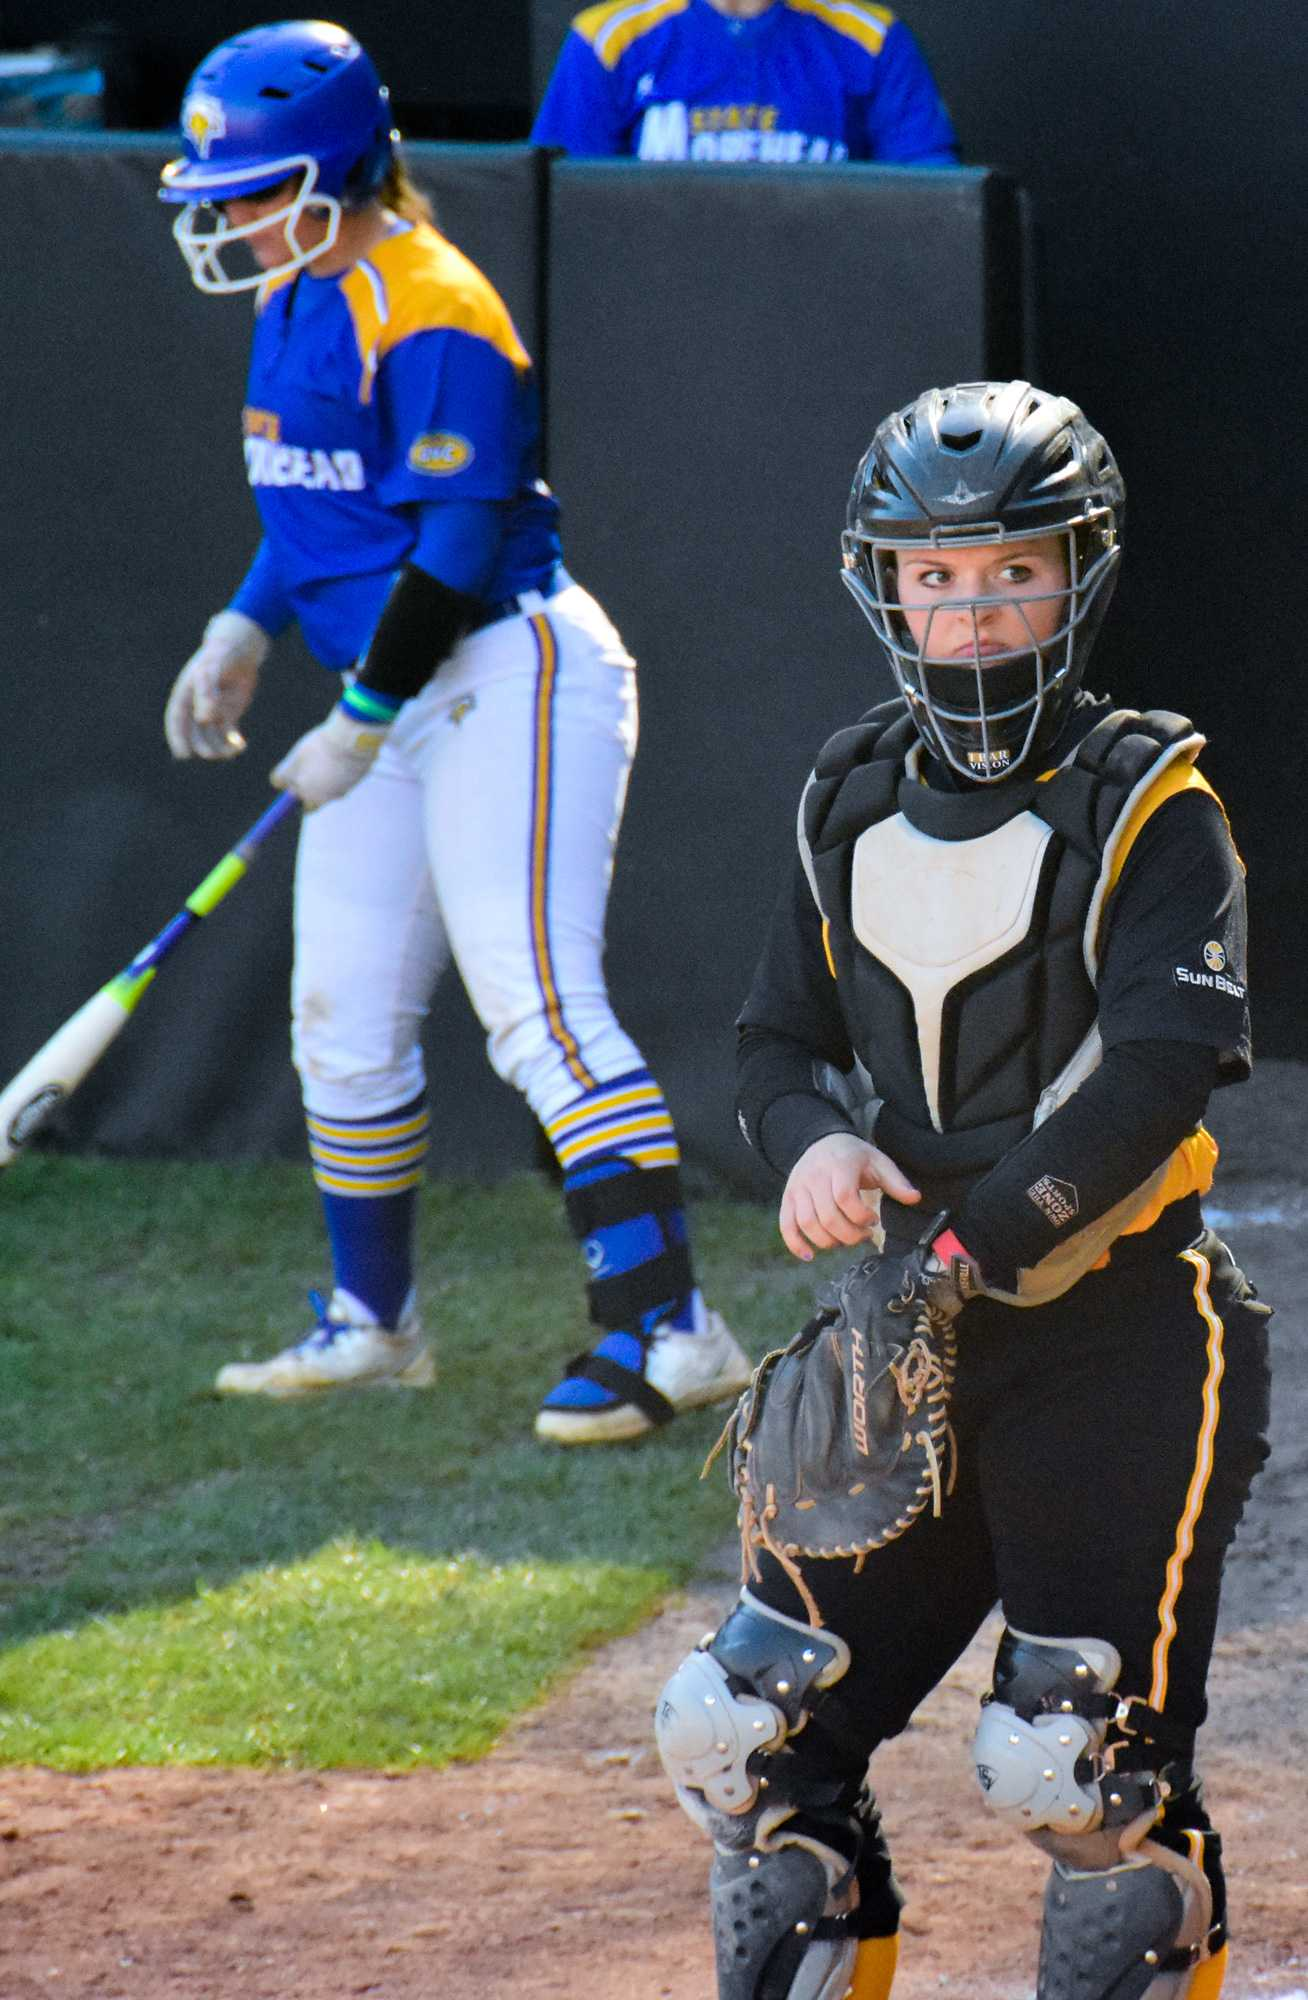 Freshman+catcher+Jenny+Dodd+during+a+game+against+Troy+on+Friday%2C+March+18.